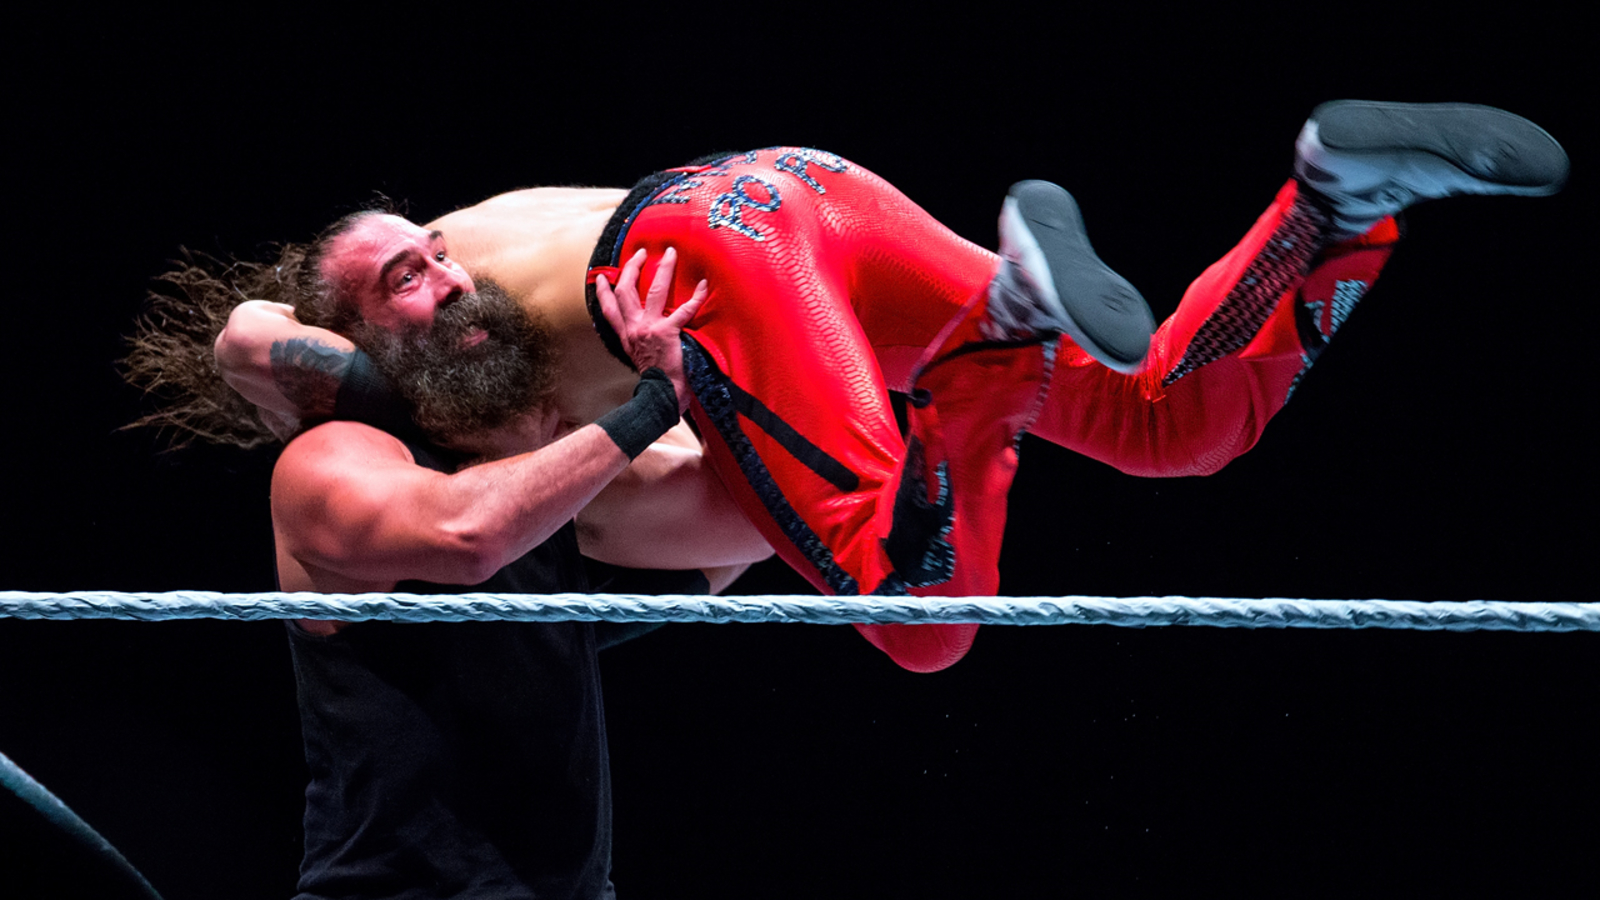 Wrestler Jon Huber, known as Luke Harper and Brodie Lee, dies at 41 from 'non-COVID related lung issue,' his wife says